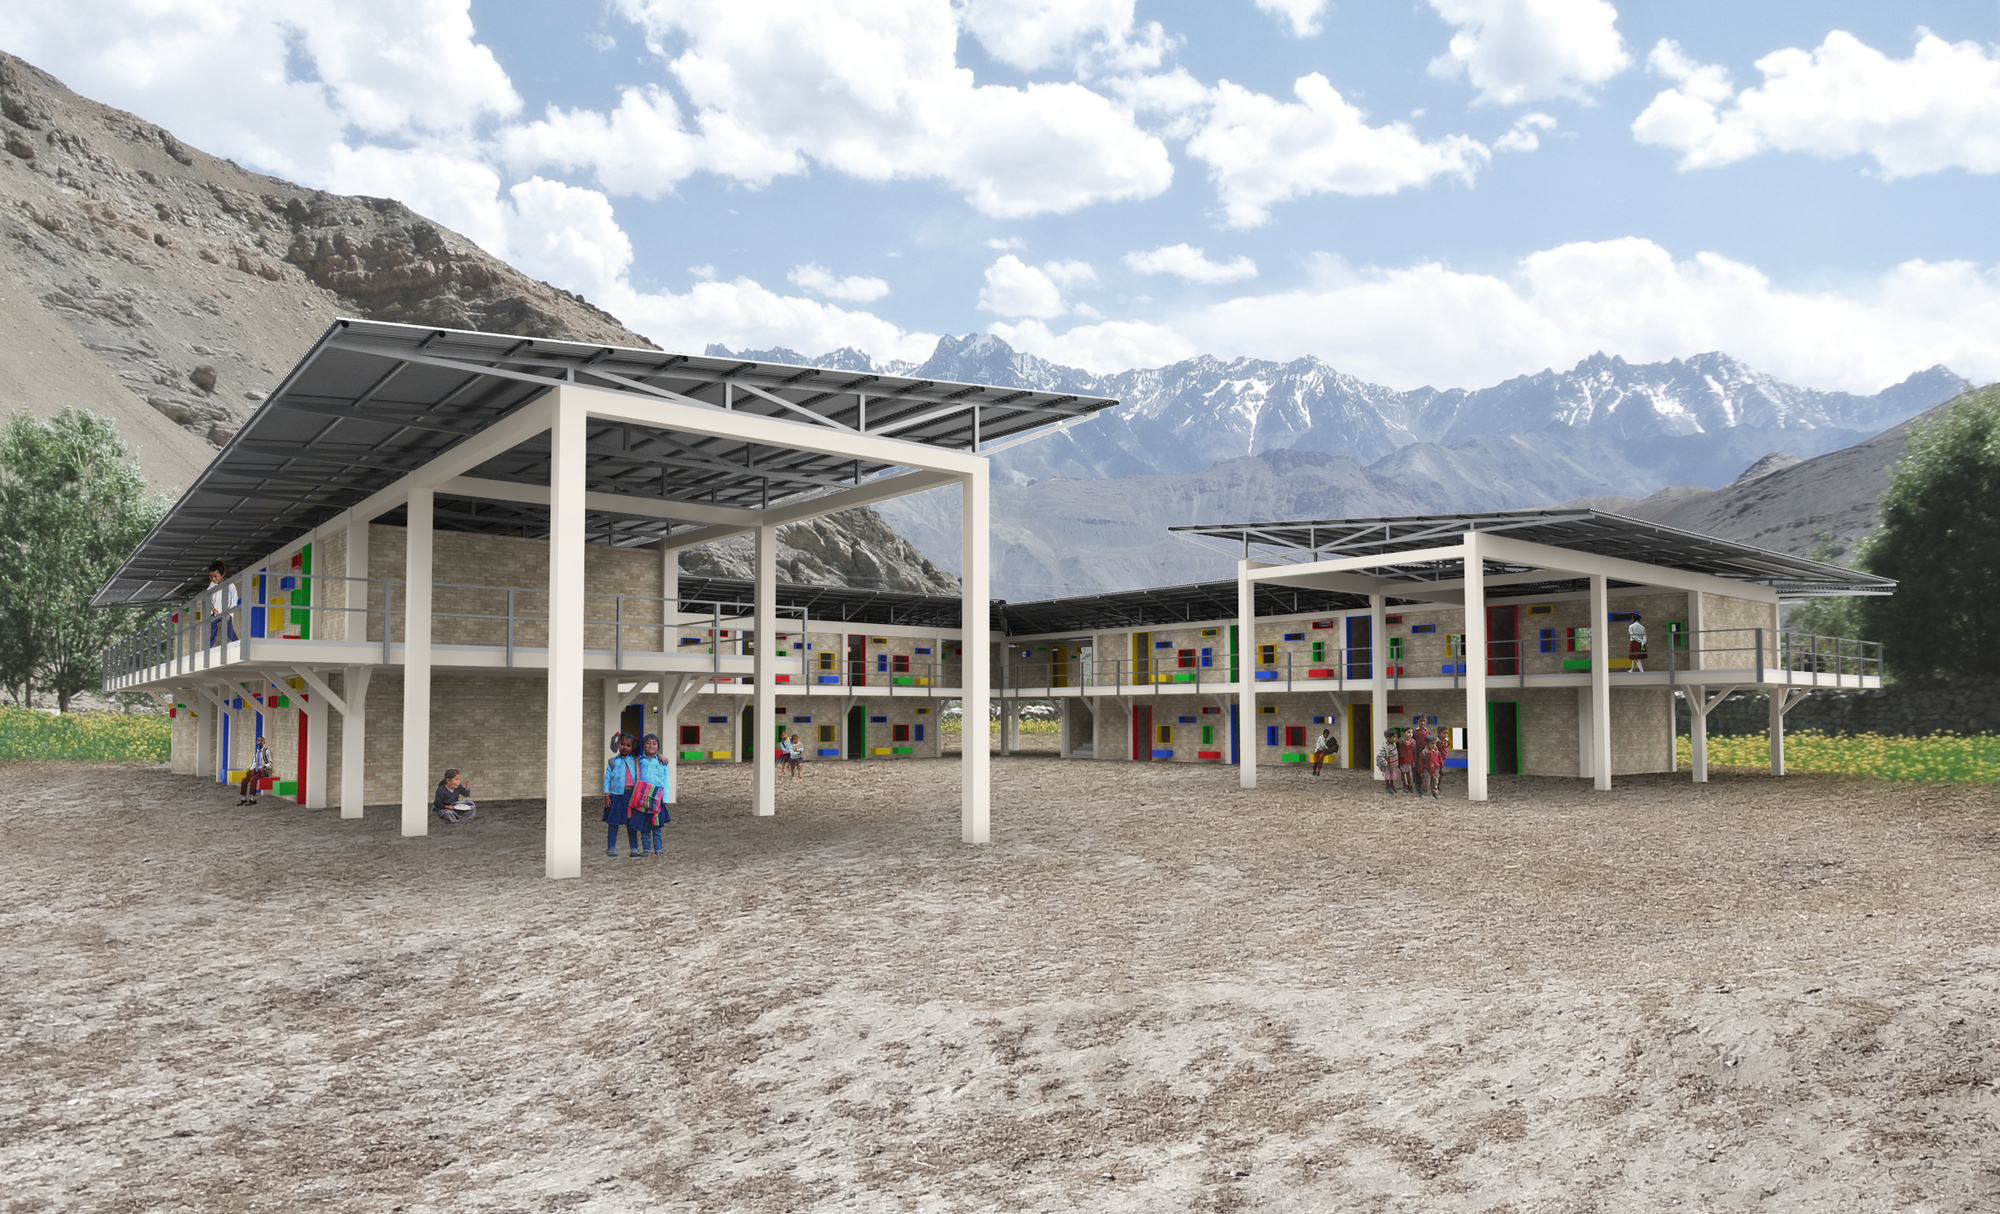 Shop reveals plans to build 50 new schools in nepal for Modern house design in nepal